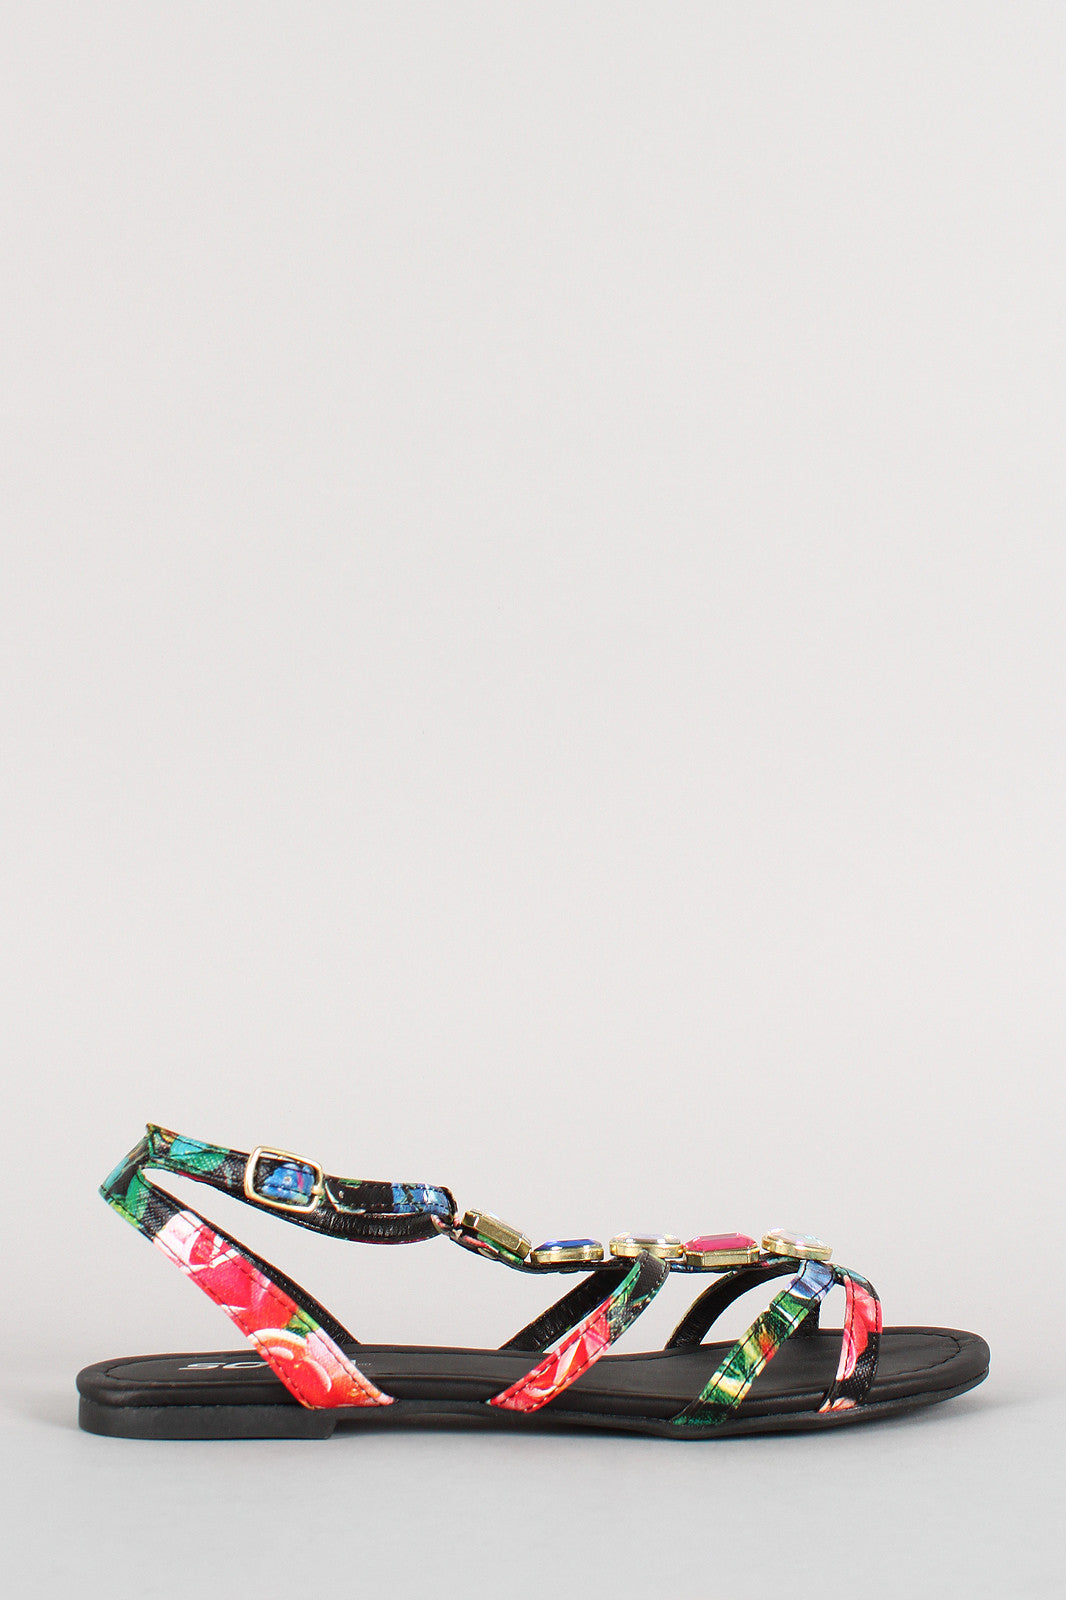 Soda Floral Jeweled Strappy Open Toe Flat Sandal - Thick 'N' Curvy Shop - 2